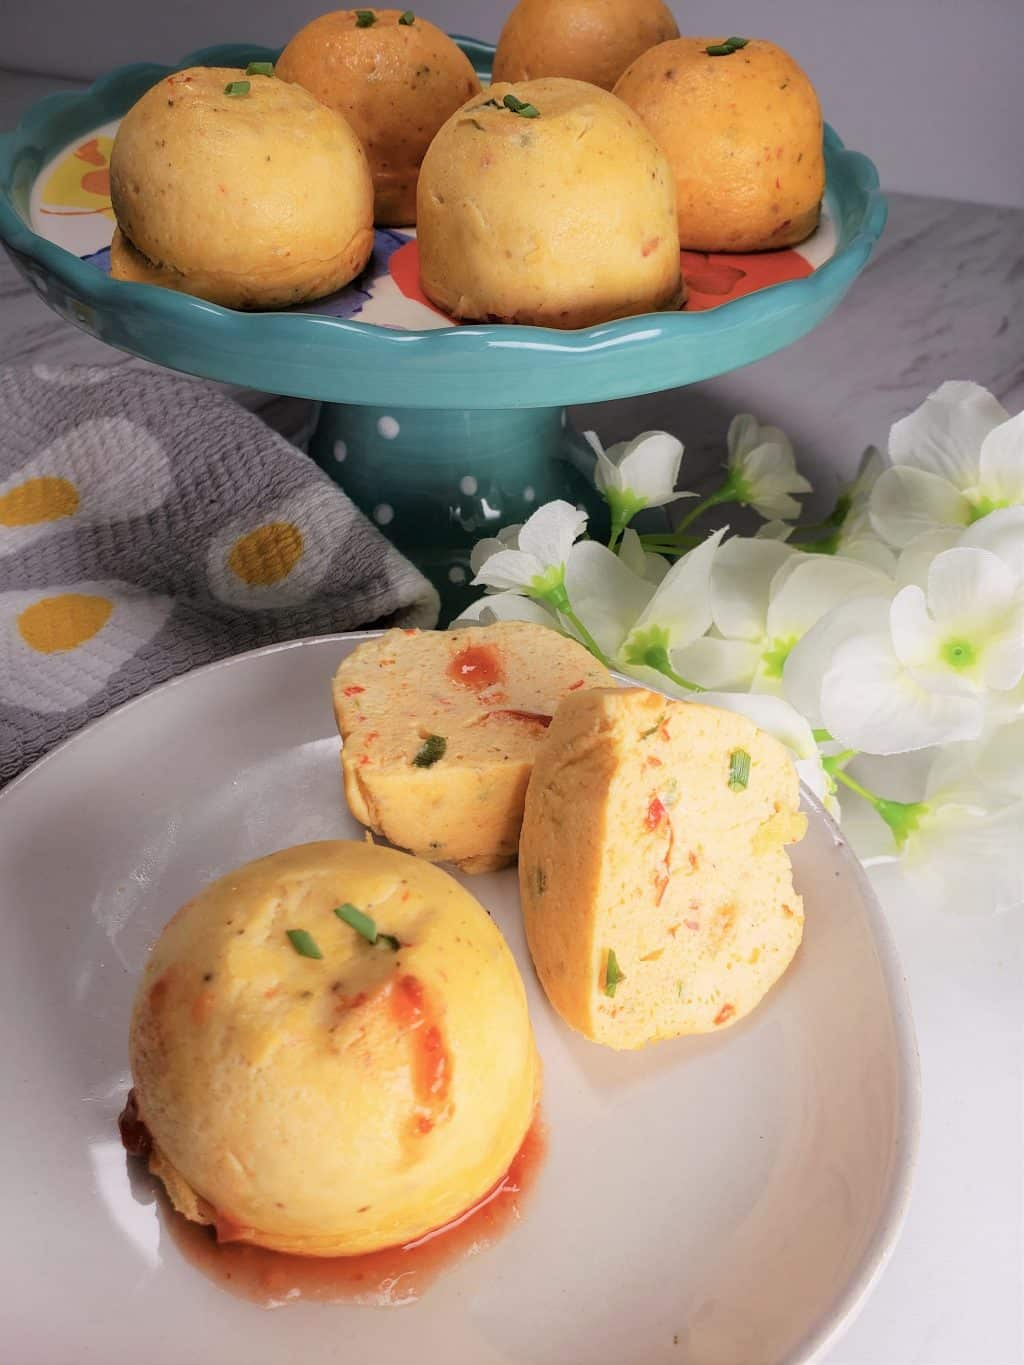 Instant Pot Feta Cheese & Red Pepper Egg Bites